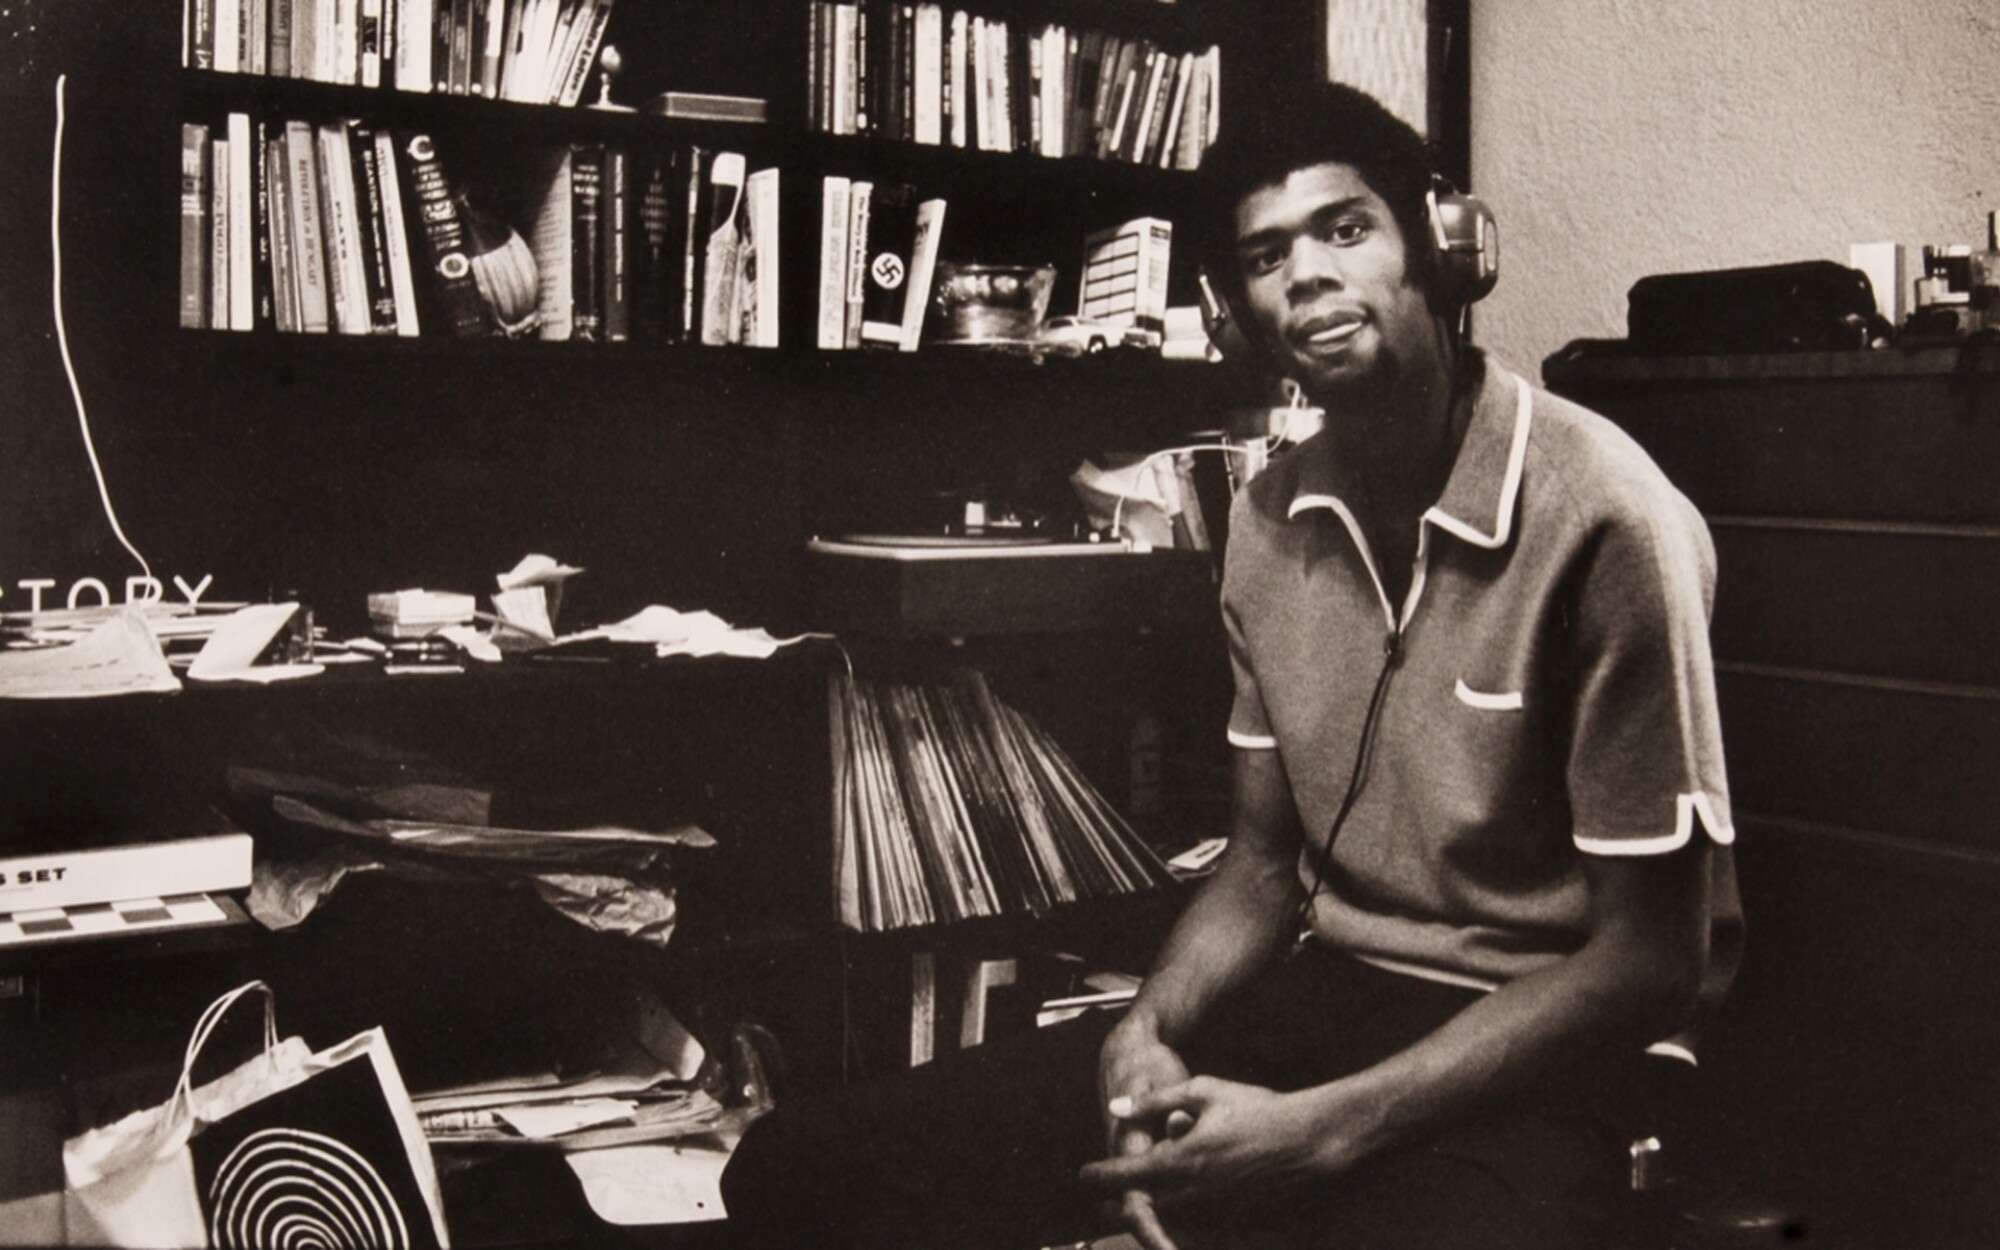 Kareem Abdul-Jabbar with his music collection in 1969.